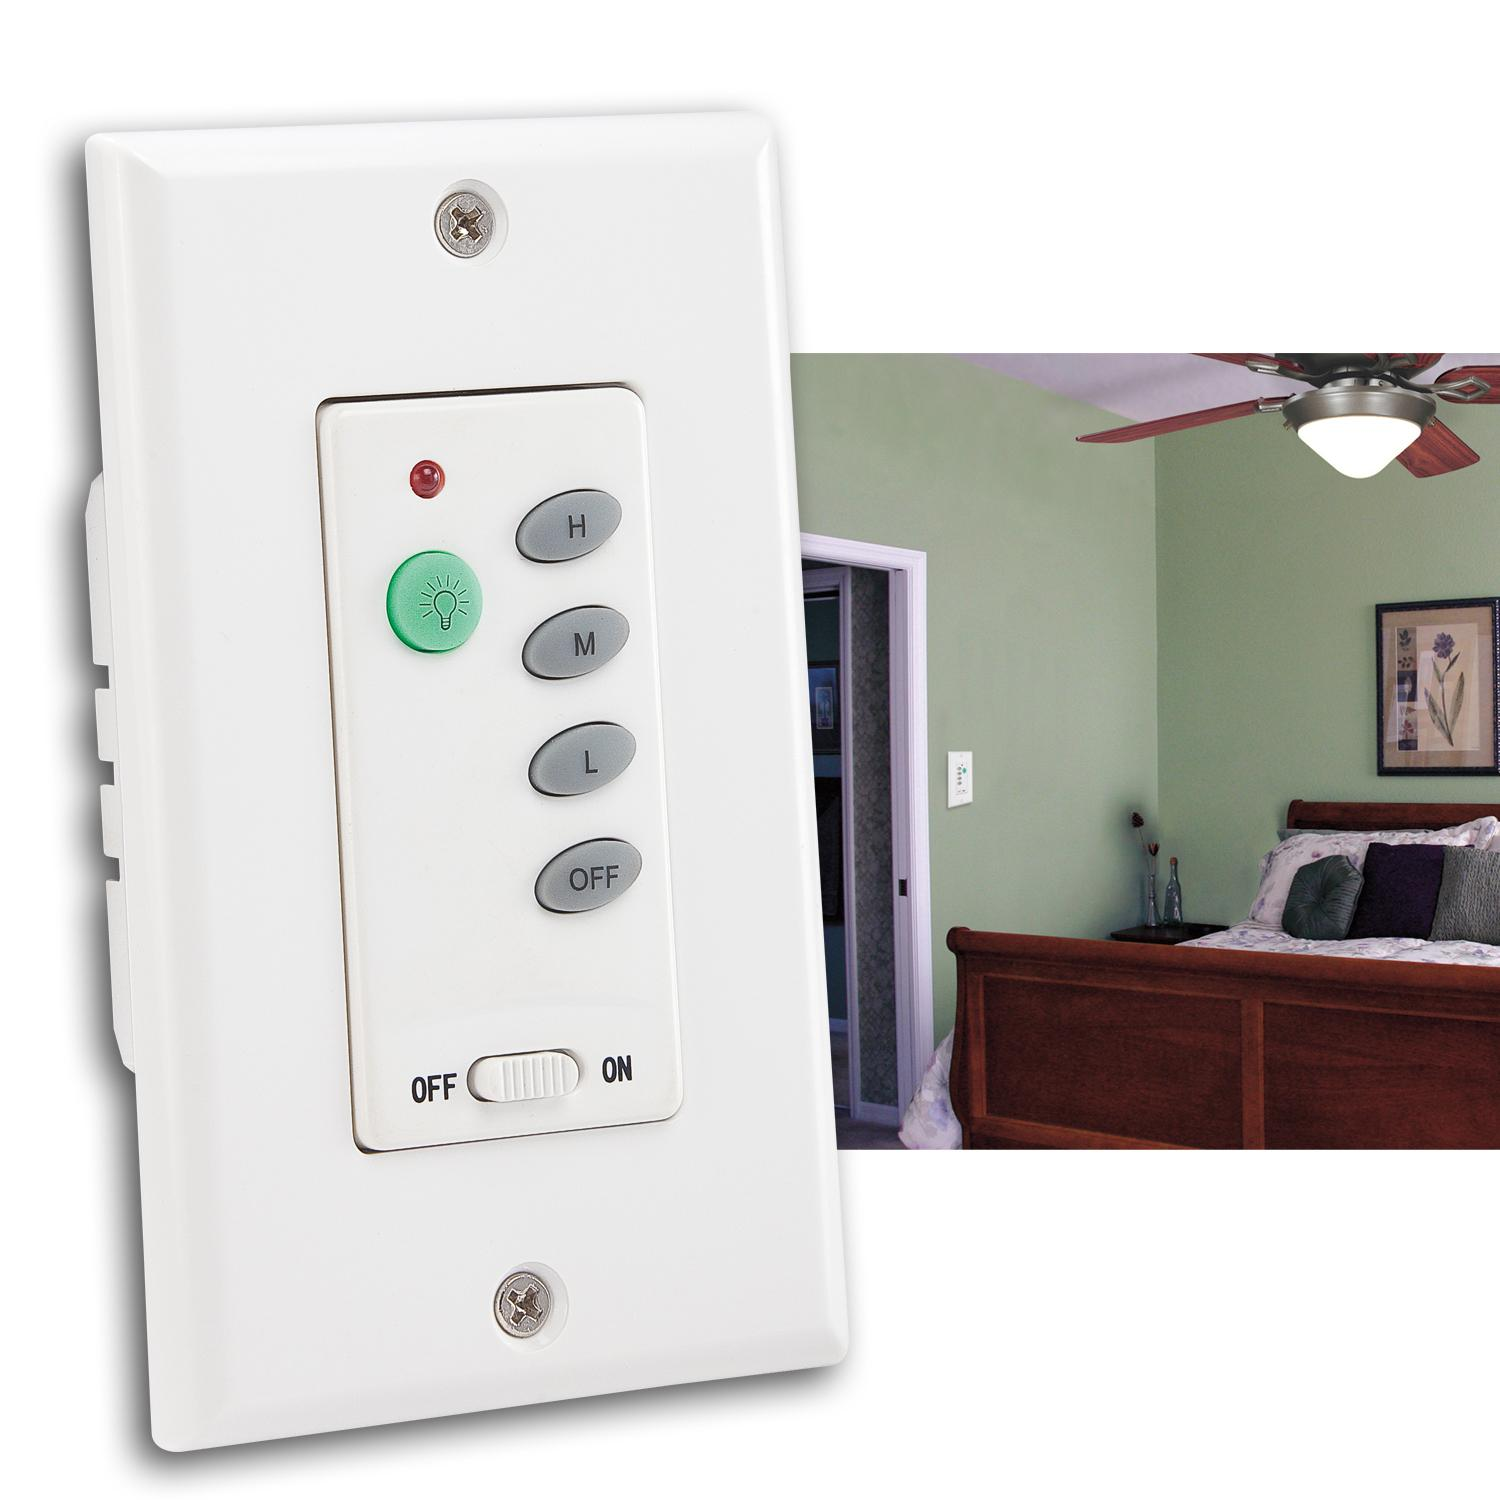 7787500 Ceiling Fan And Light Wall Control